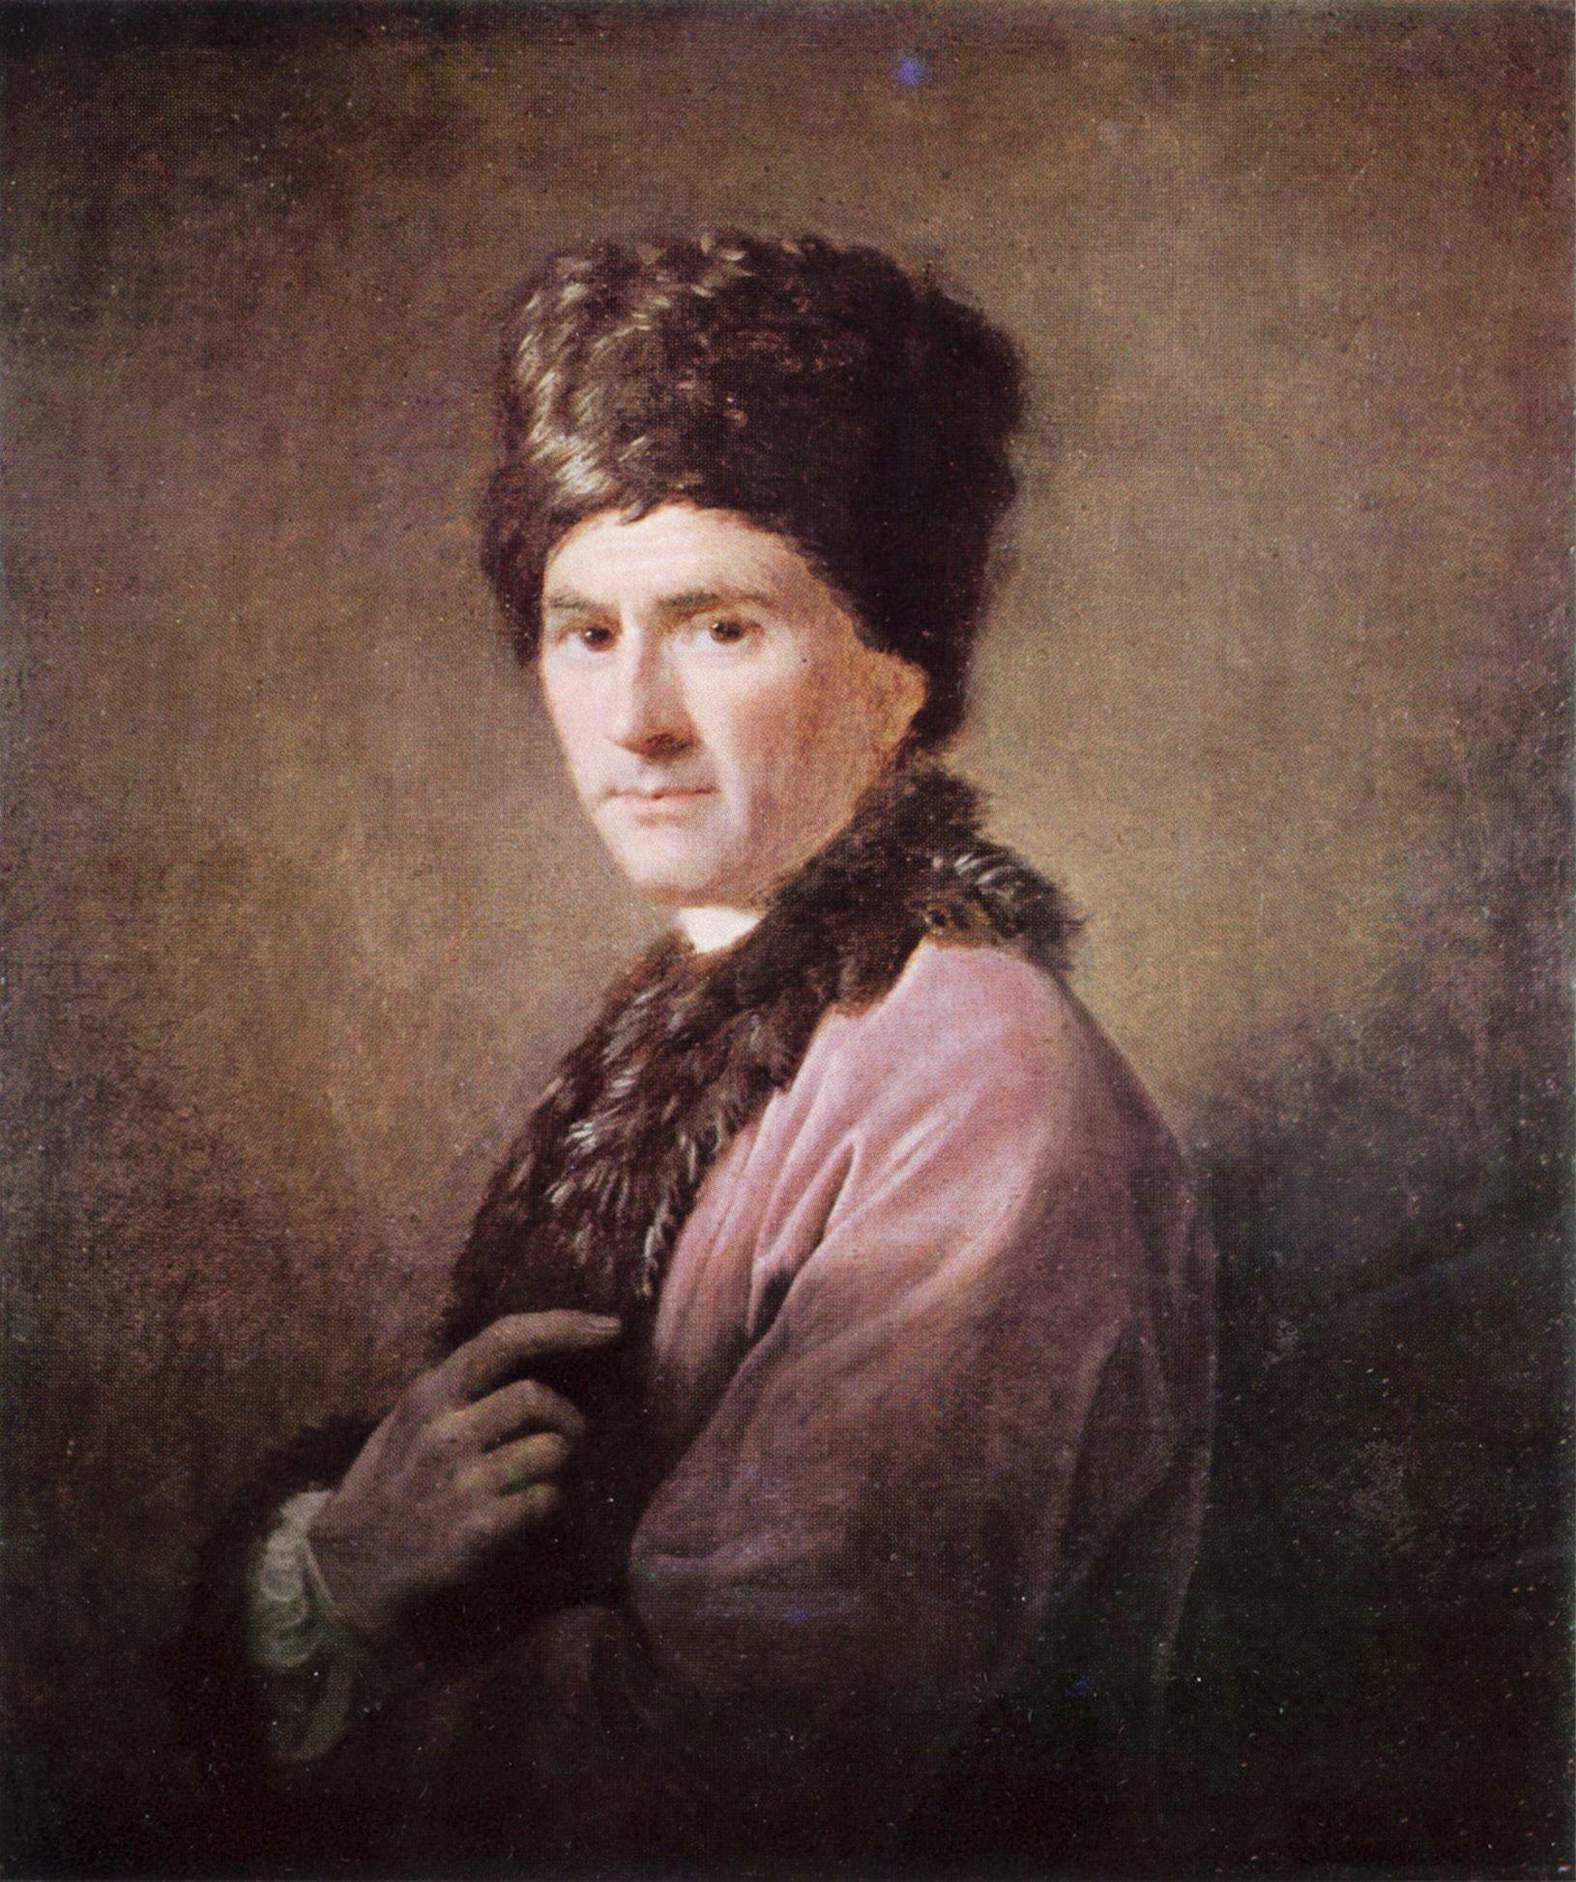 Afanasy Afanasyevich Fet. Biography of the poet